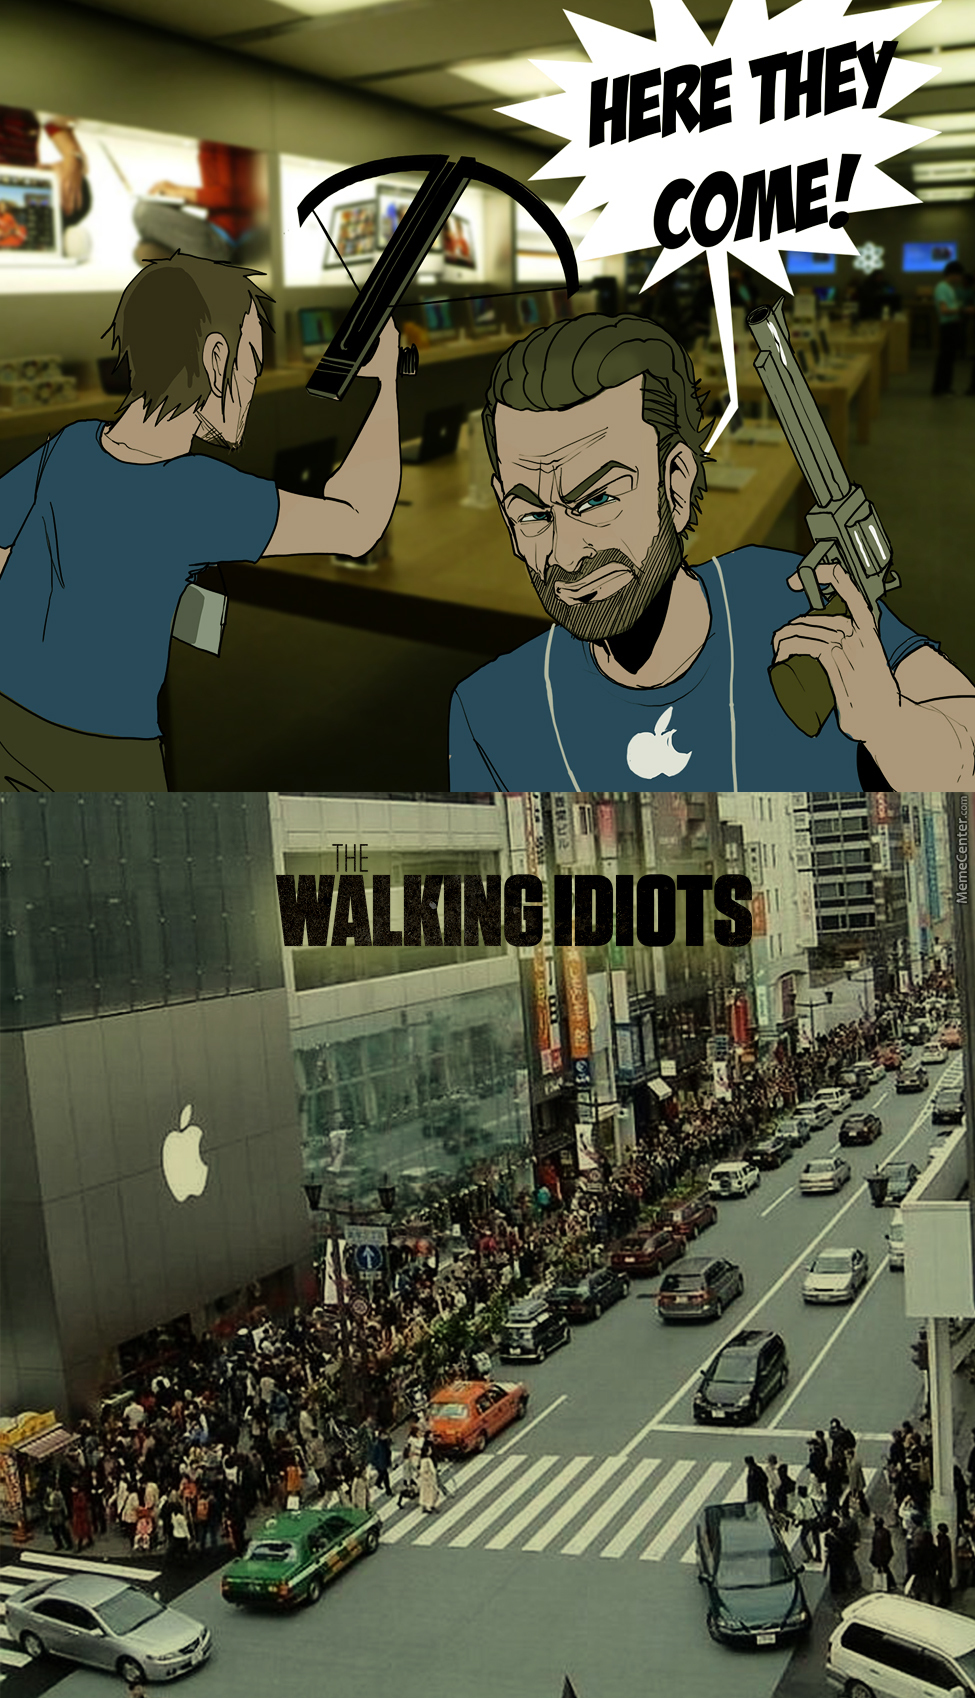 The Walking Idiots